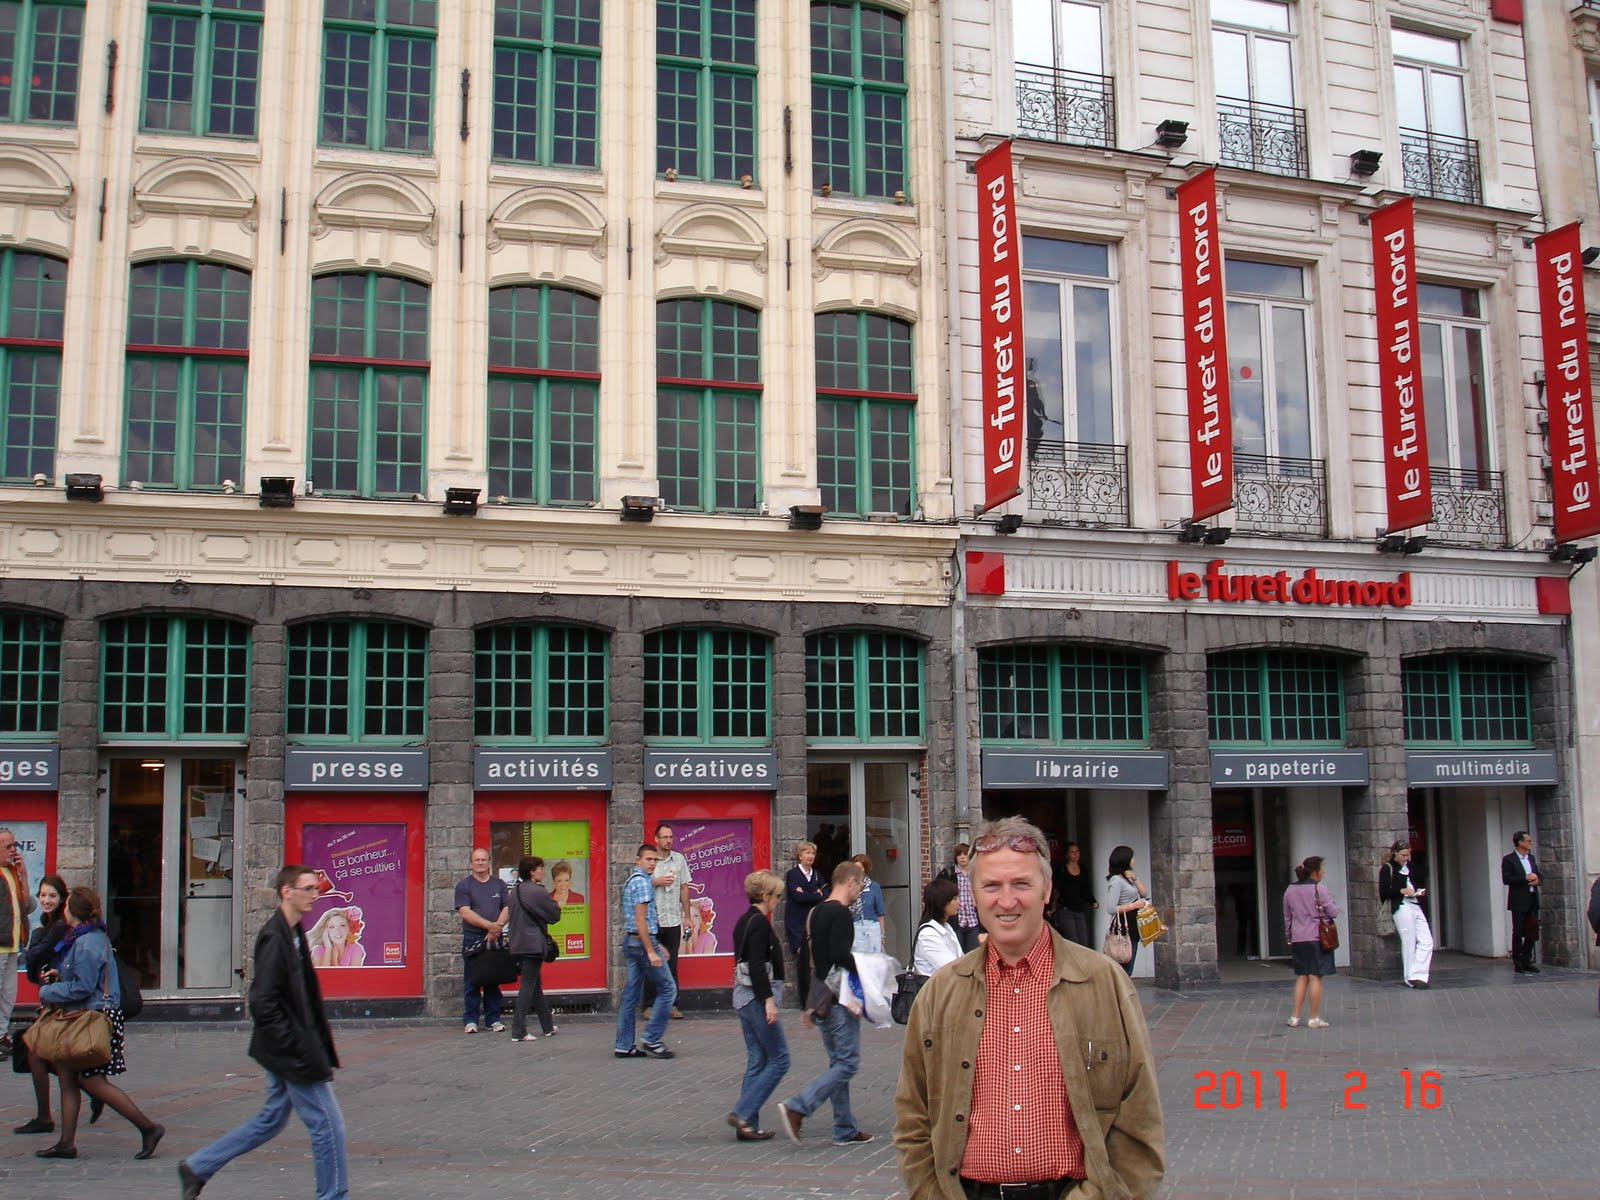 brave new world livres modernes and livres anciens in lille